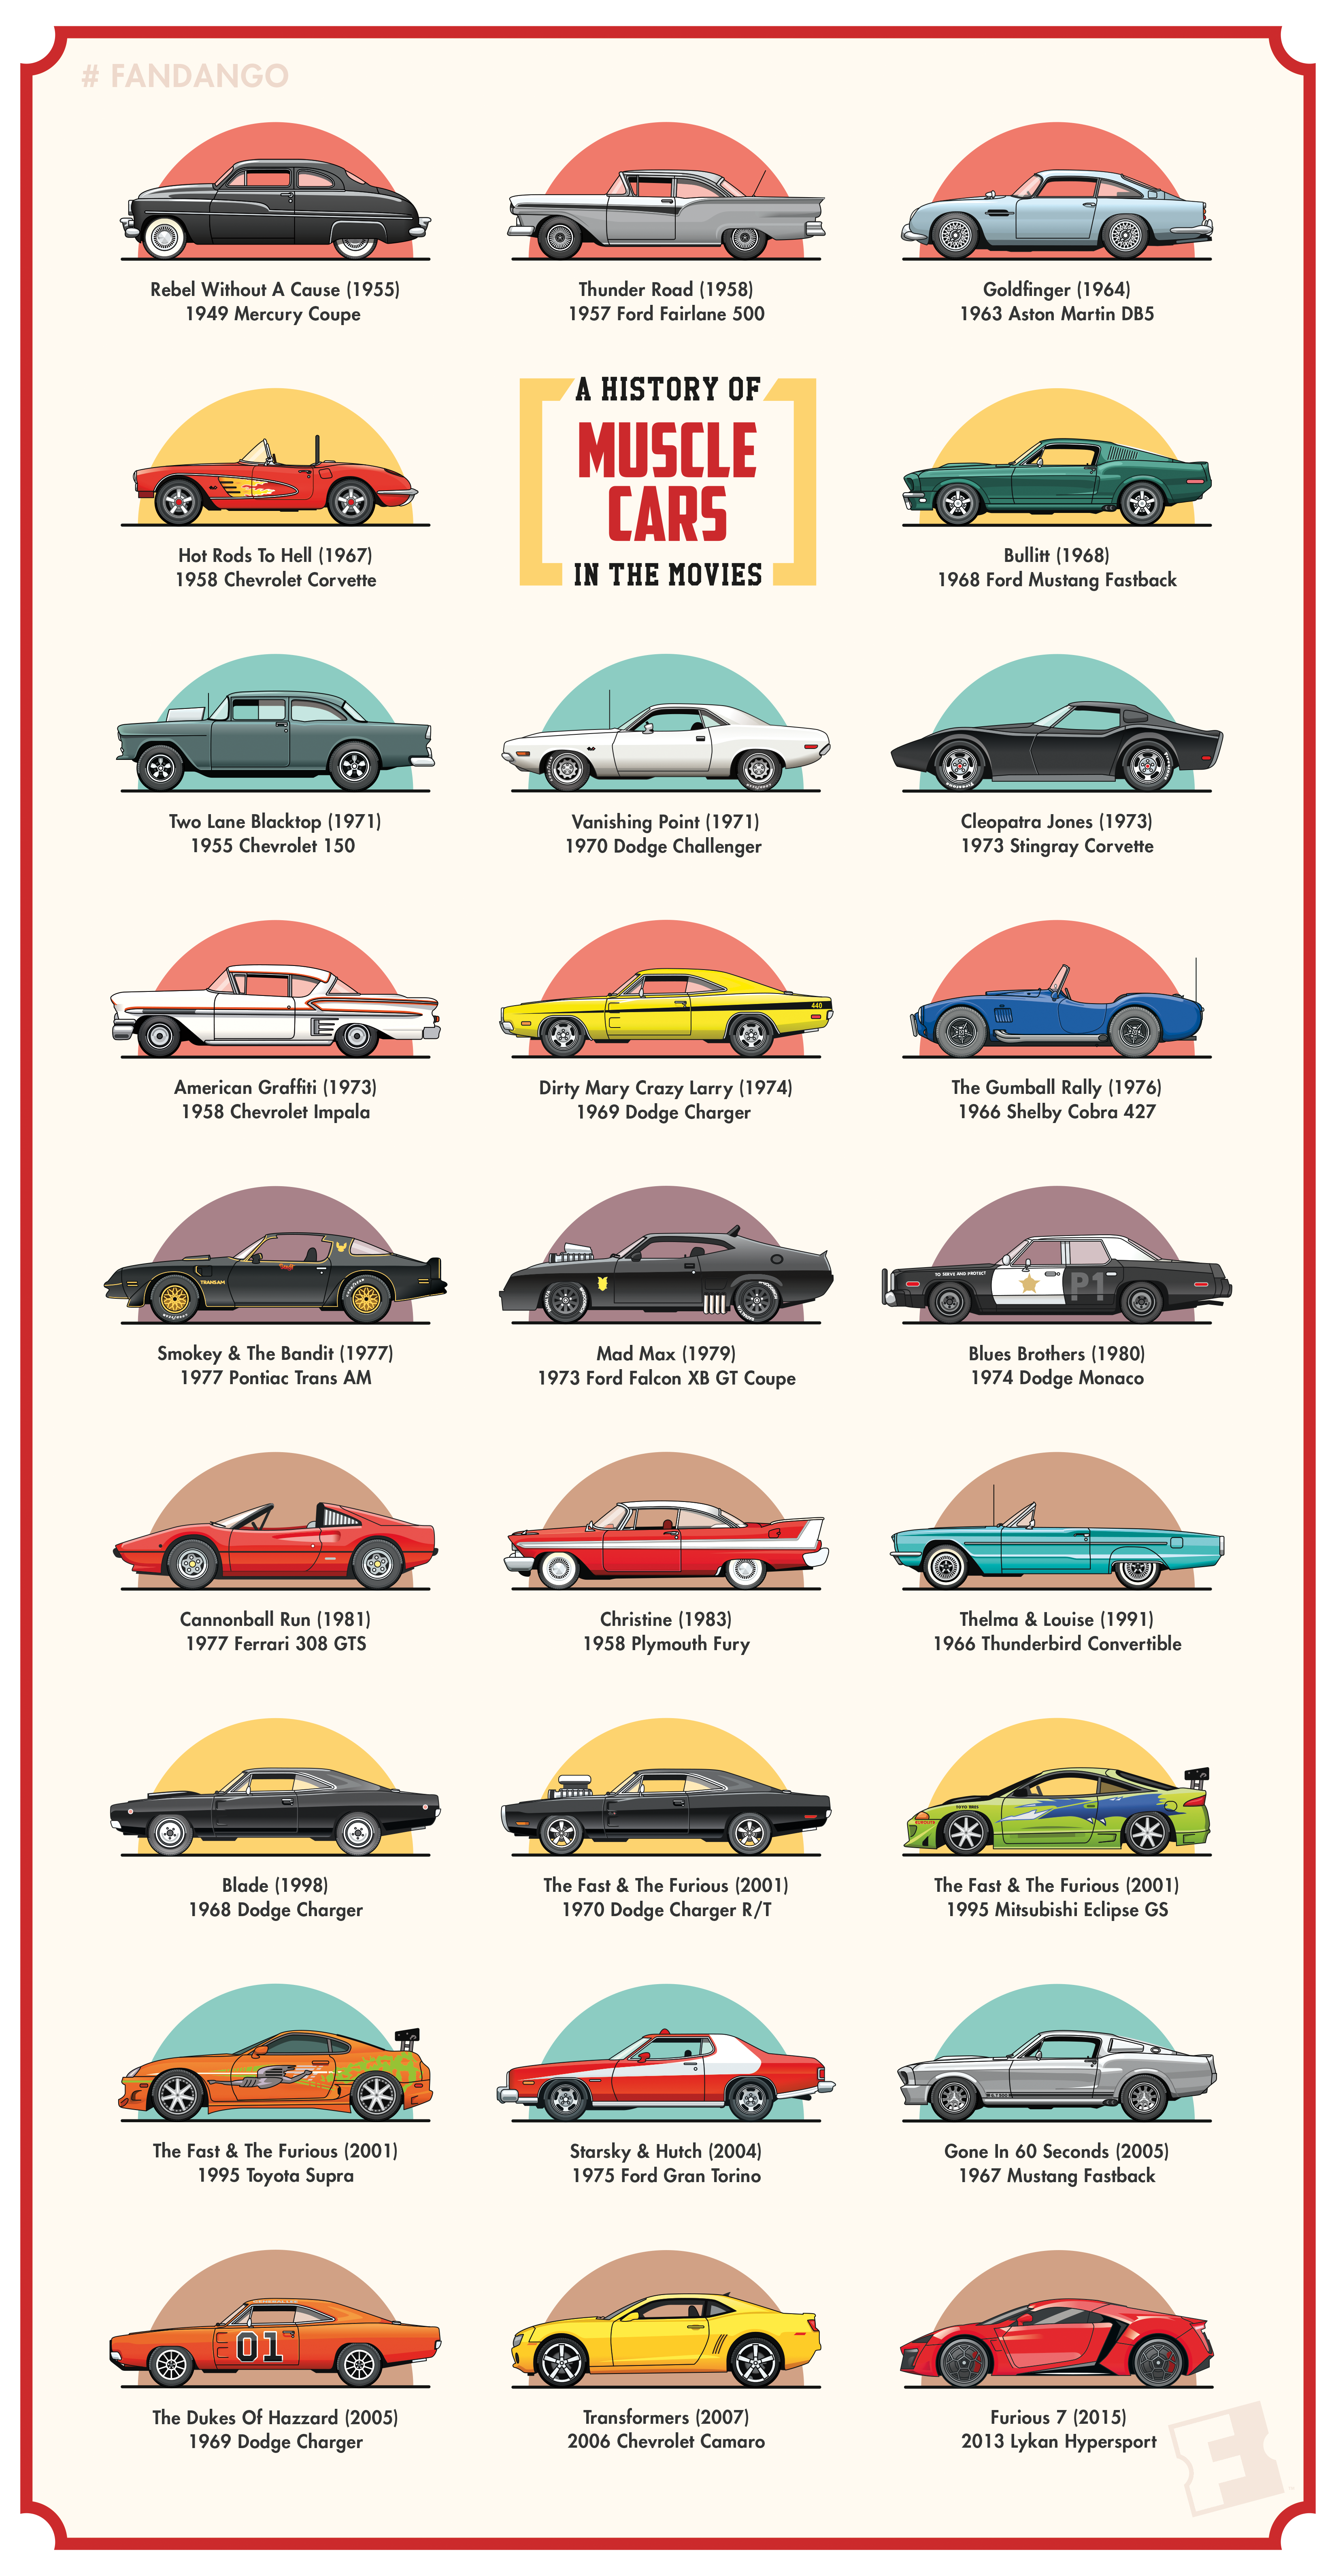 small resolution of put the pedal to the metal and see if you can find your favorite movie muscle car in this revved up poster